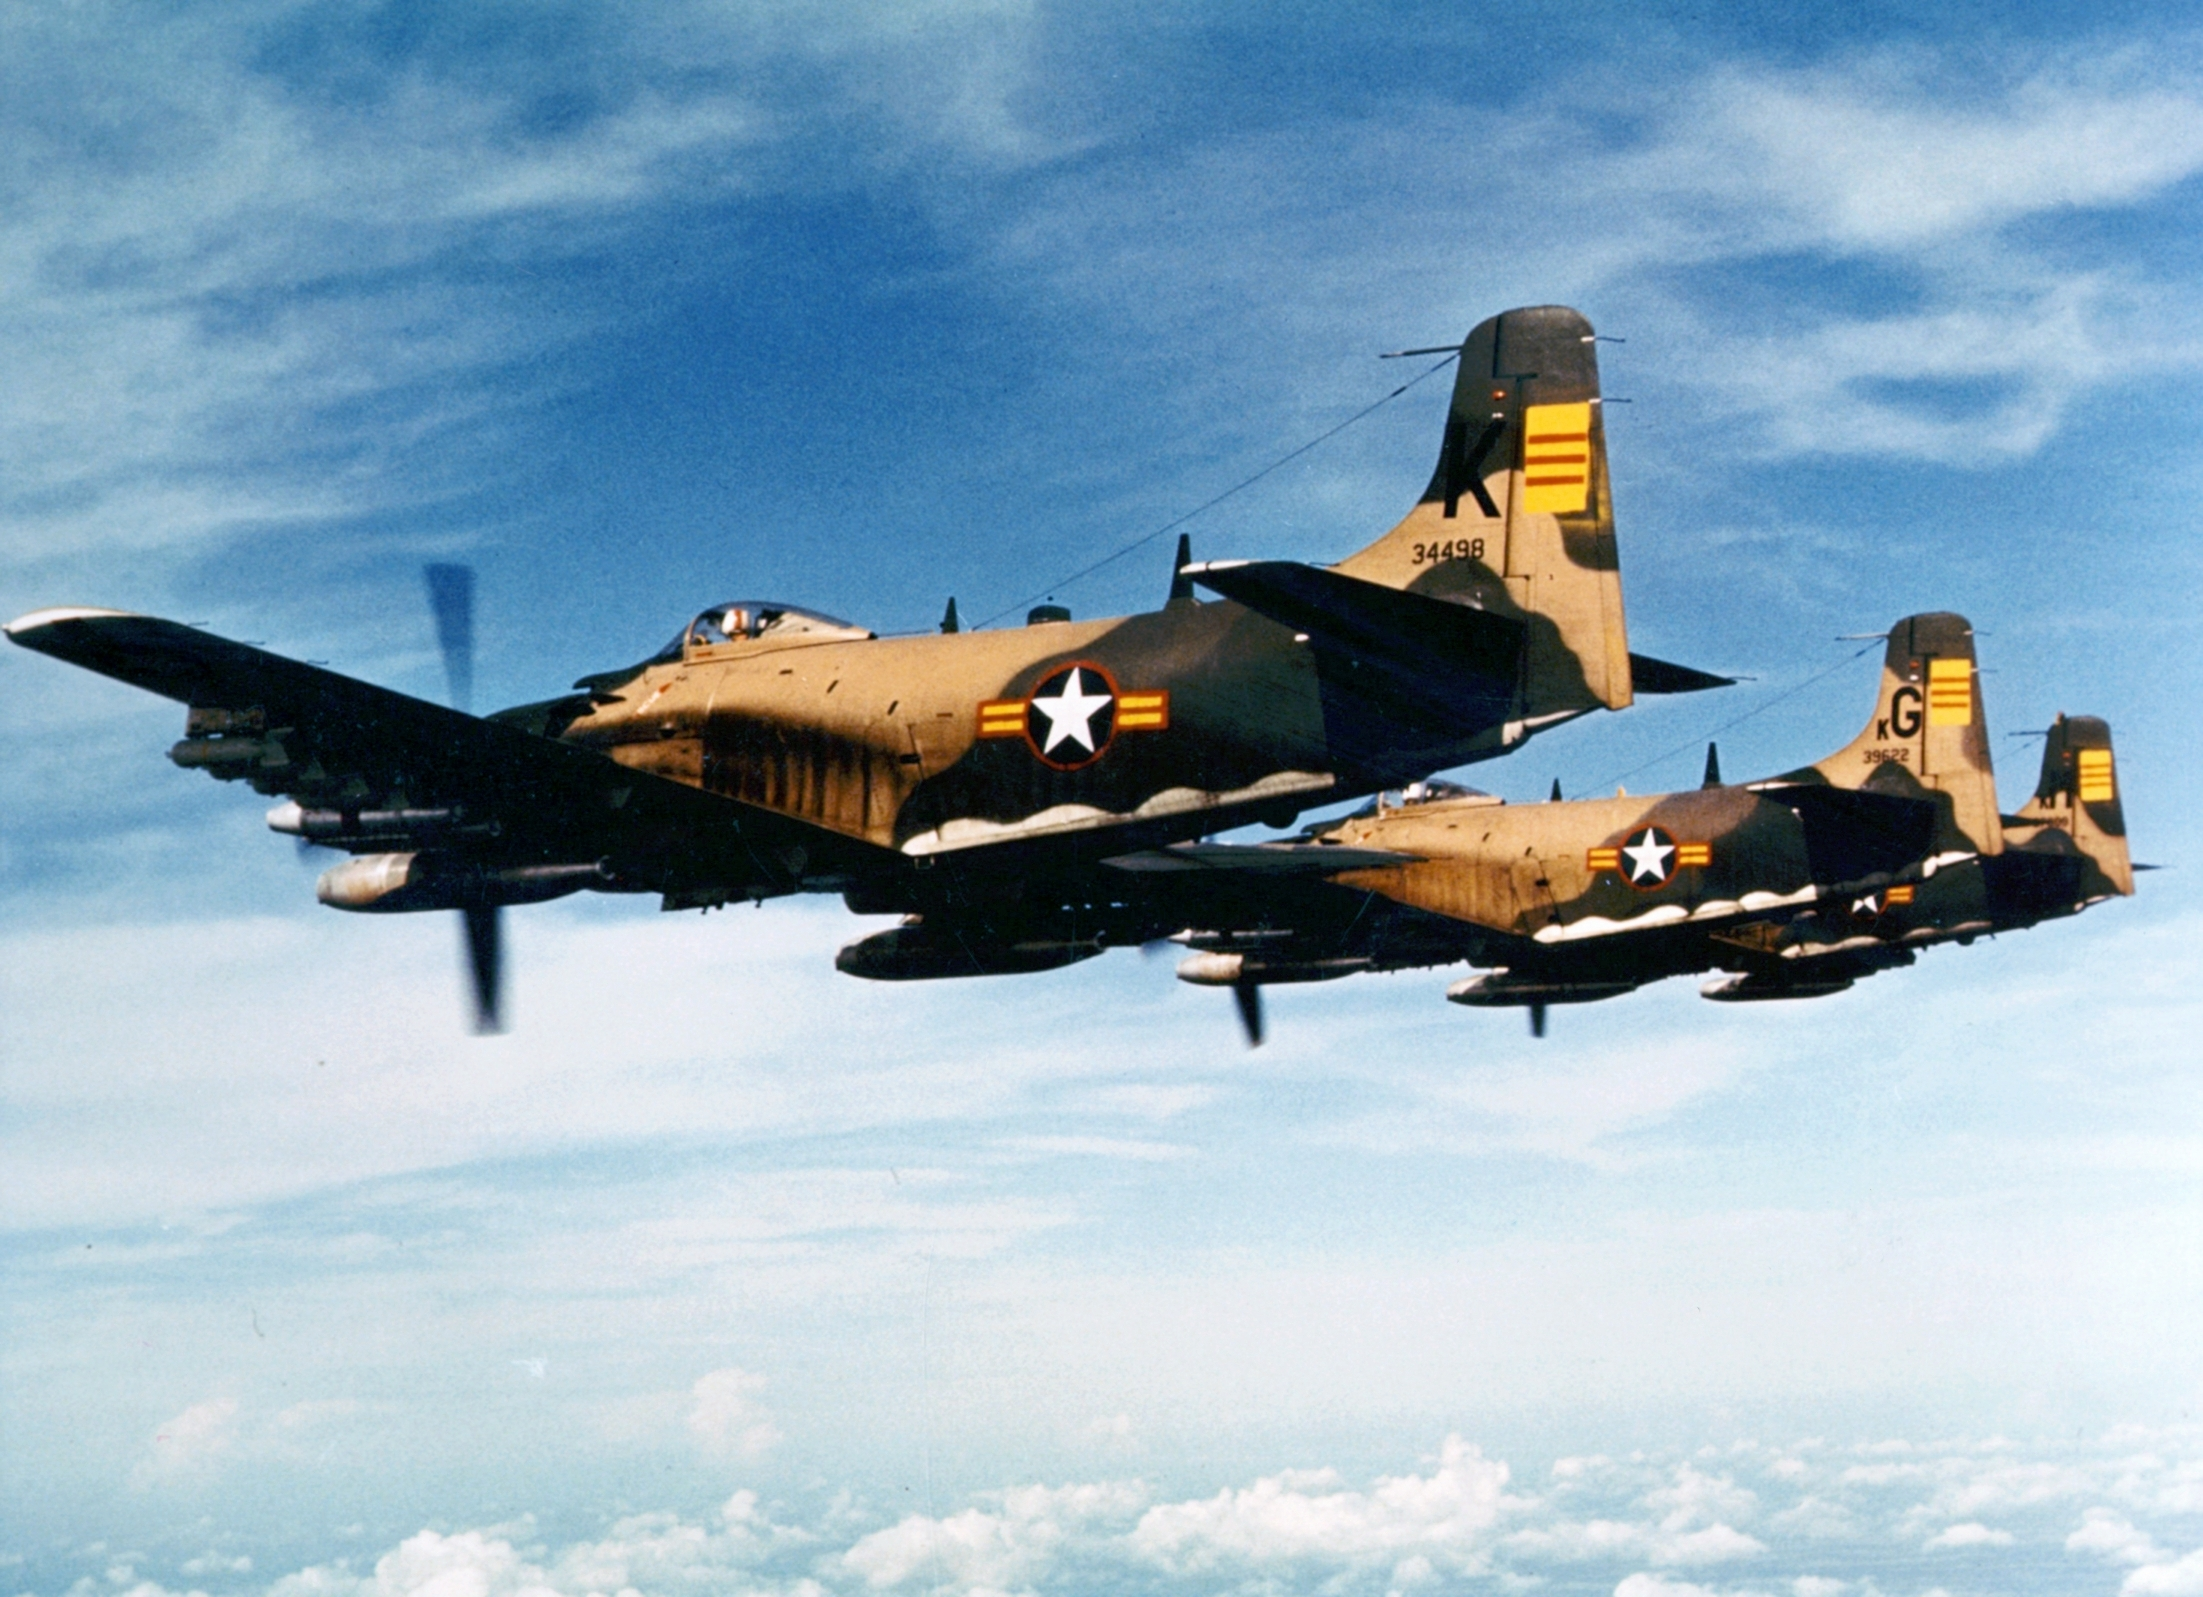 https://upload.wikimedia.org/wikipedia/commons/5/51/A-1H_Skyraider_VNAF_armed_in_flight.jpeg